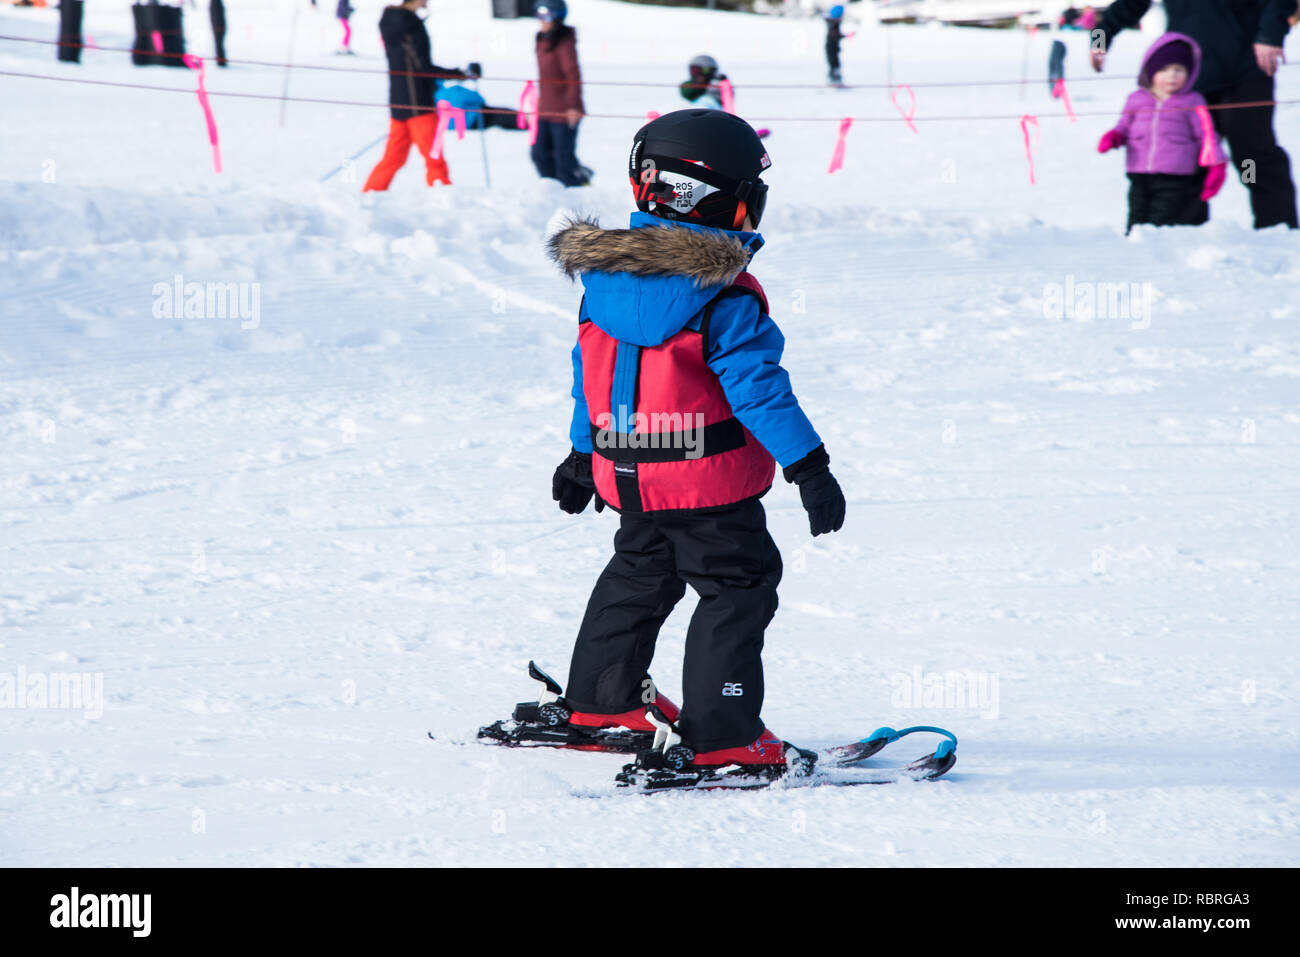 Skiing at Park City Ski Resort. - Stock Image